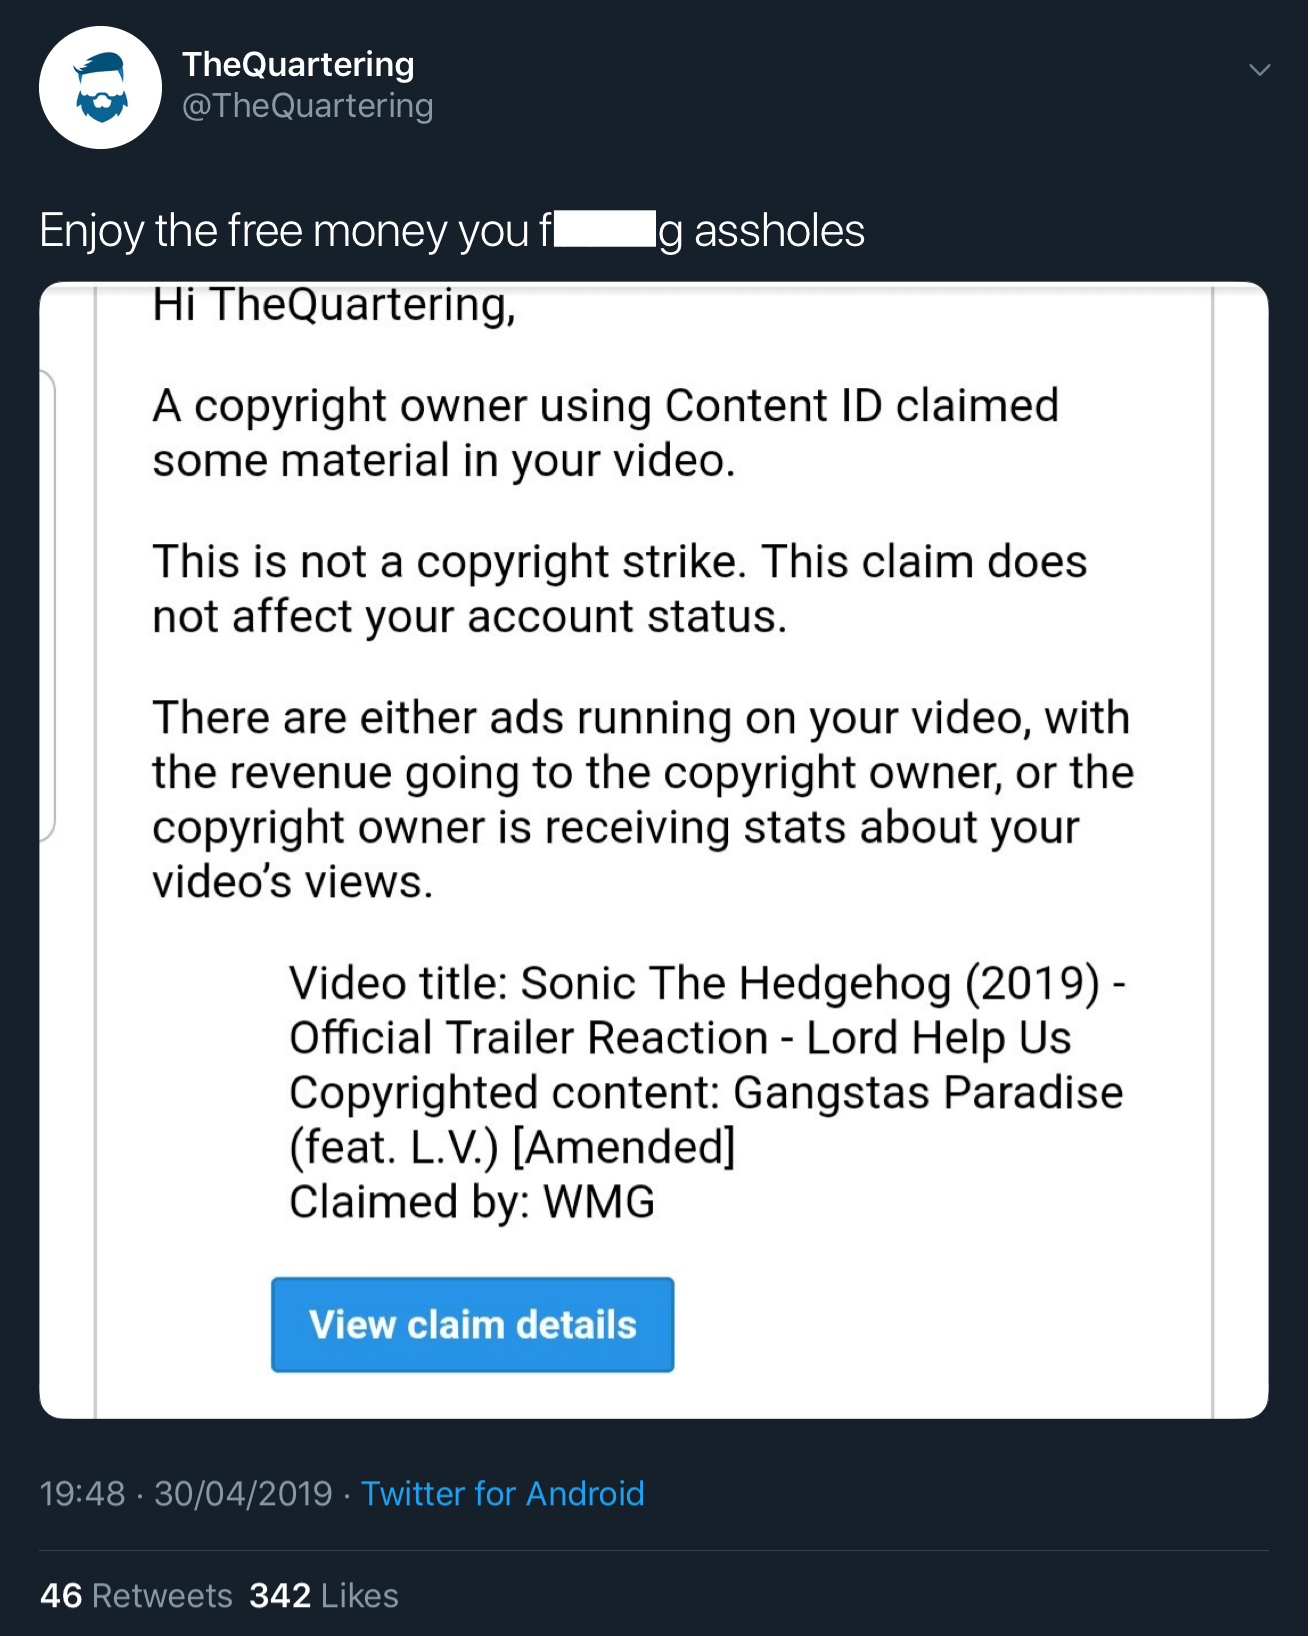 The fake copyright claim filed against The Quartering's Sonic the Hedgehog trailer reaction video.